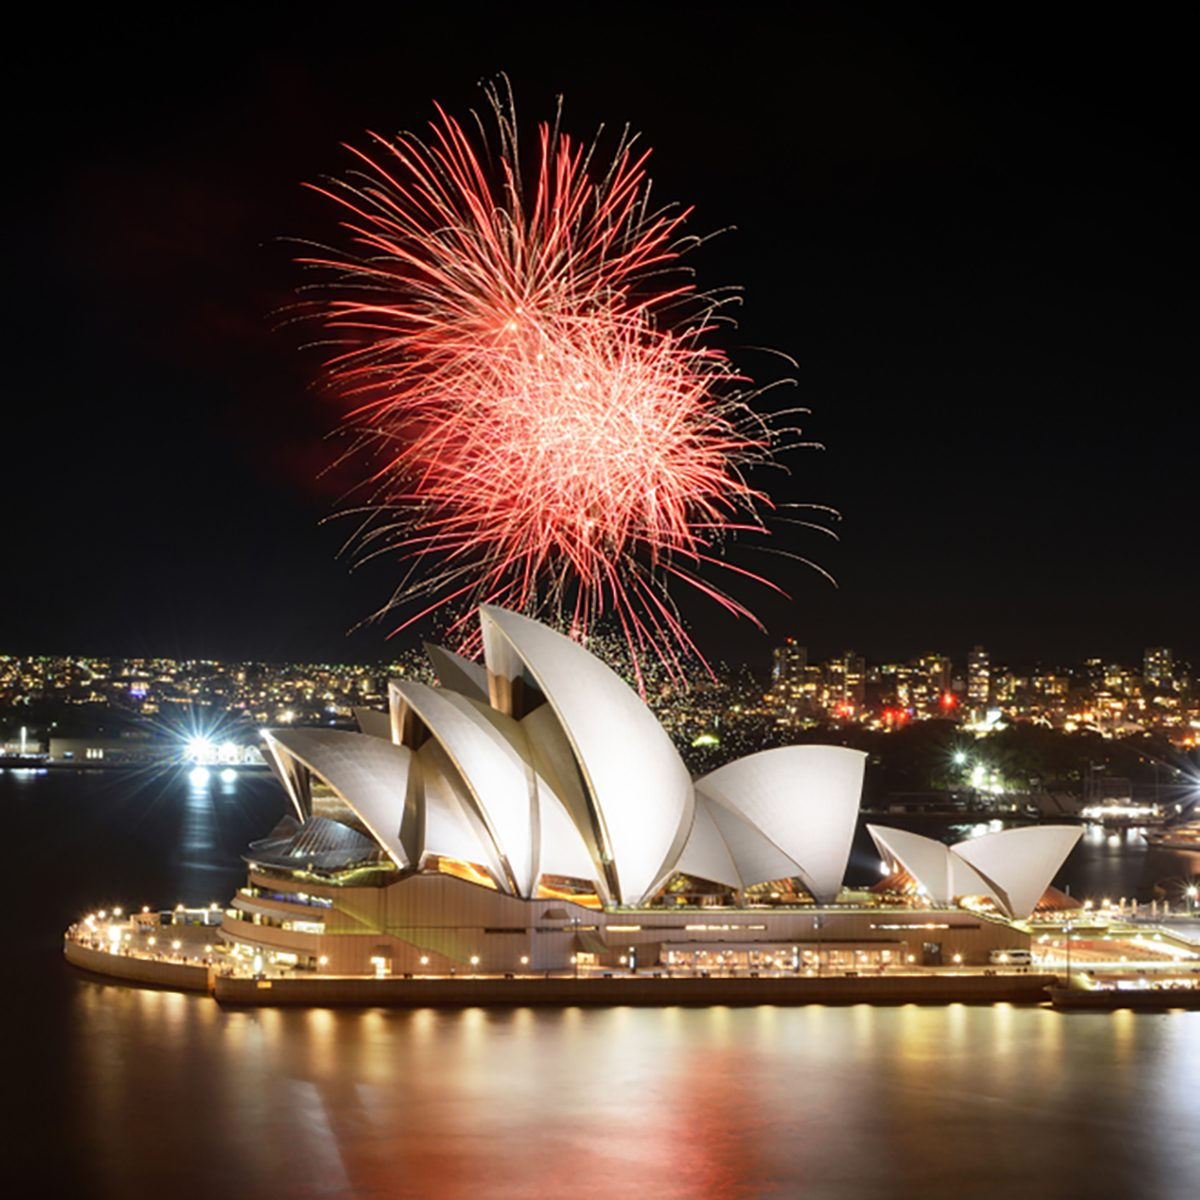 Fiery red fireworks light up the Sydney Opera House and Harbor in a brilliant display